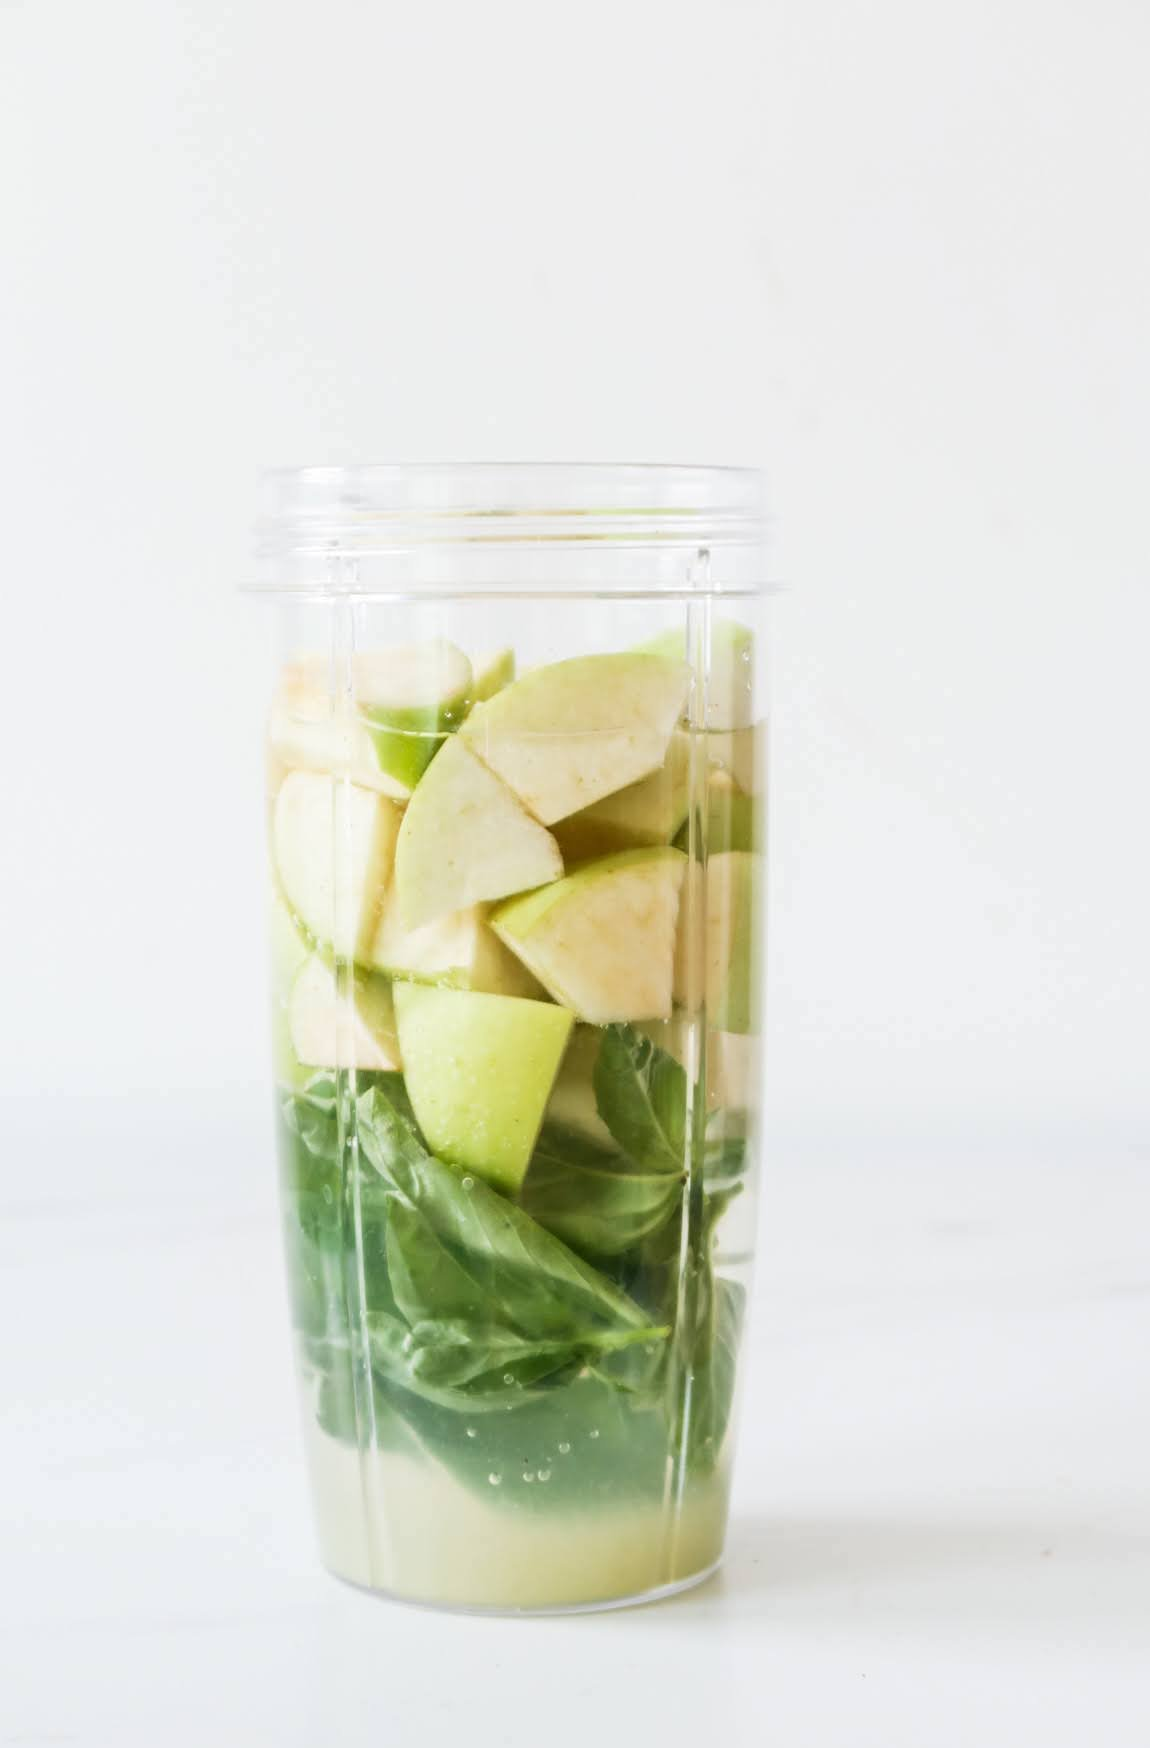 Easy detox drink with basil, super tasty and refreshing to reduce inflammation, improve digestion and your skin. This anti-inflammatory recipe is full of antioxidants and ready in around 5 minutes.